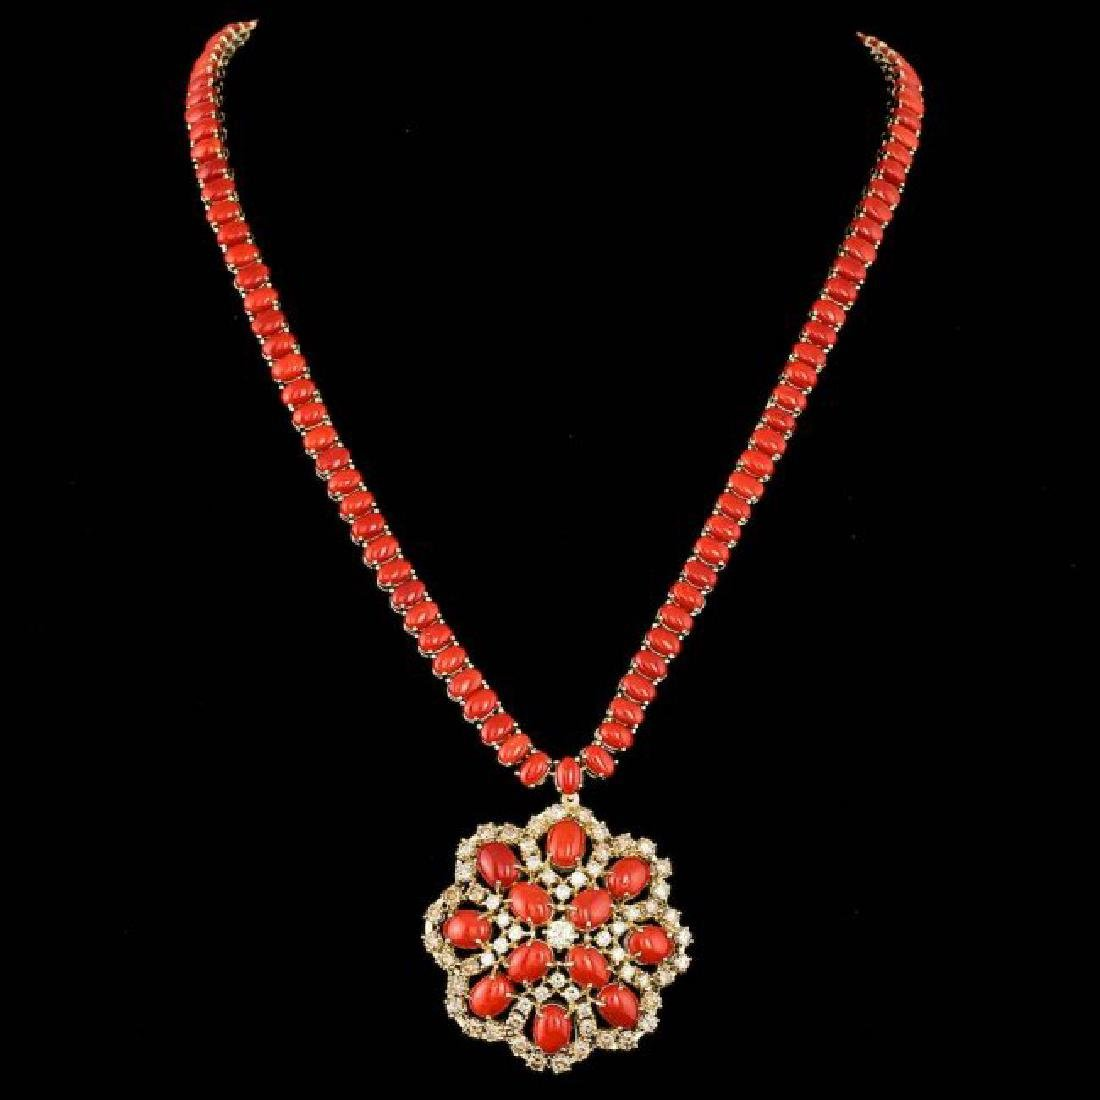 14k Gold 58.50ct Coral 5.50ct Diamond Necklace